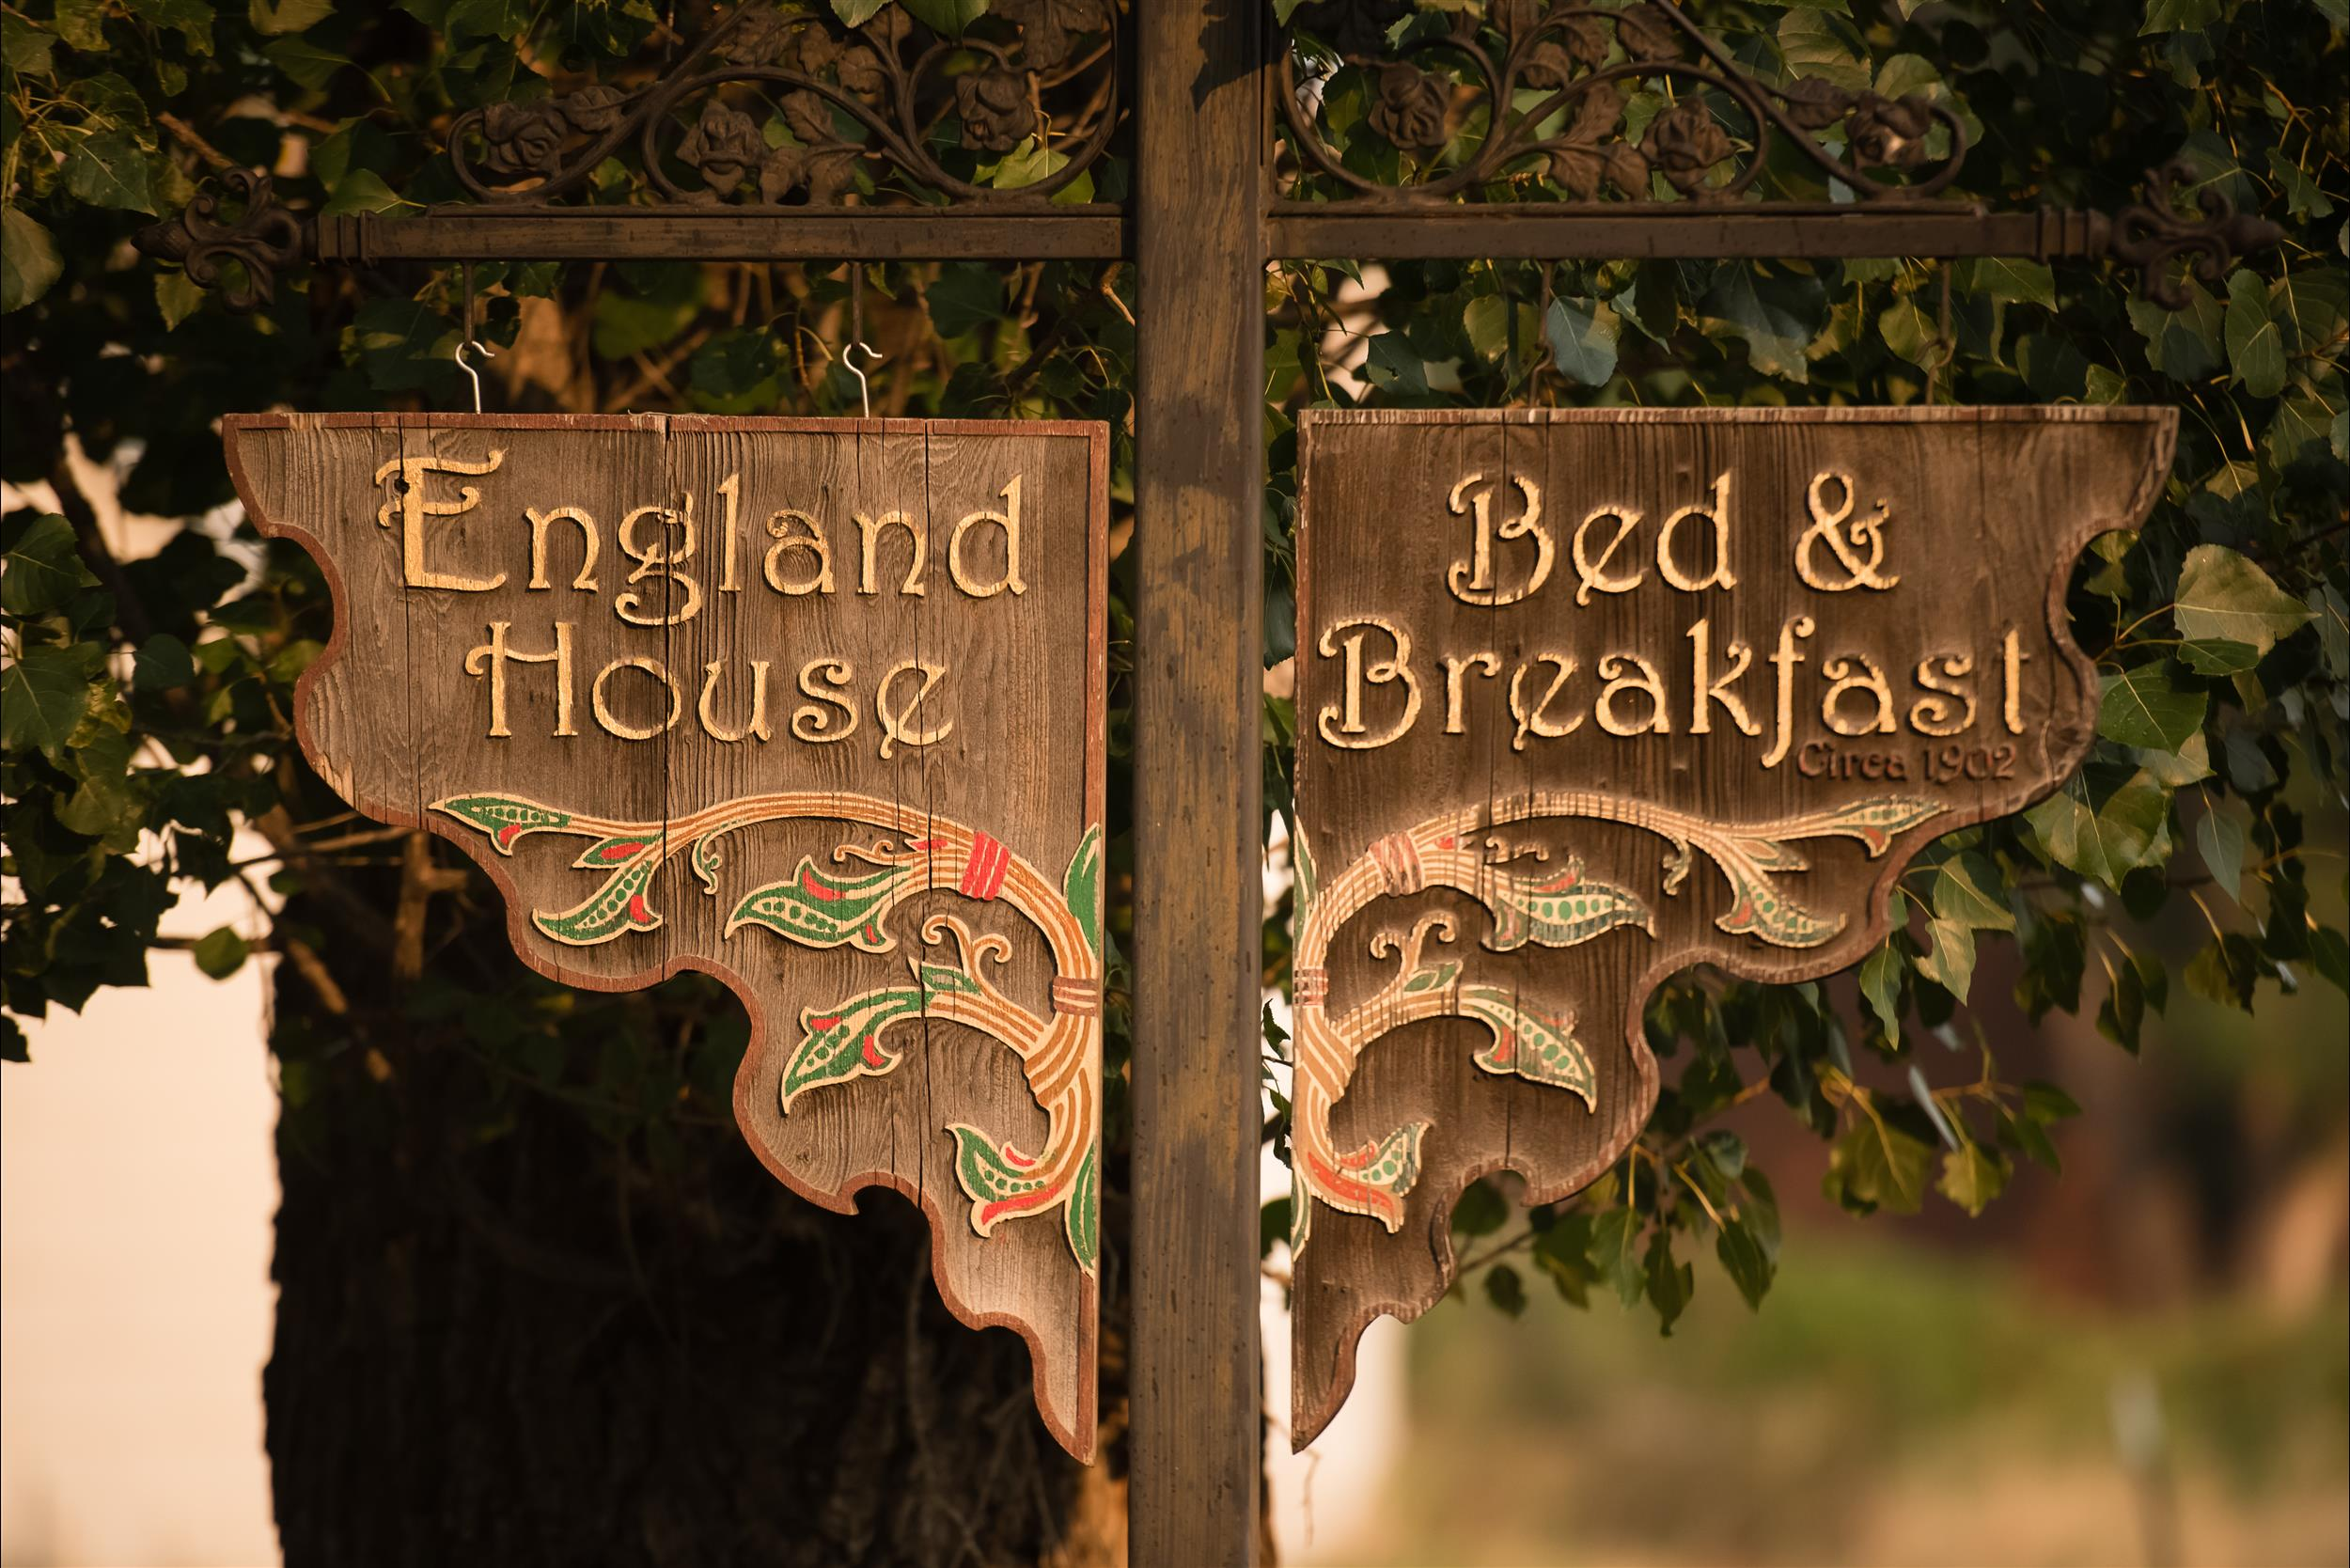 England House Sign